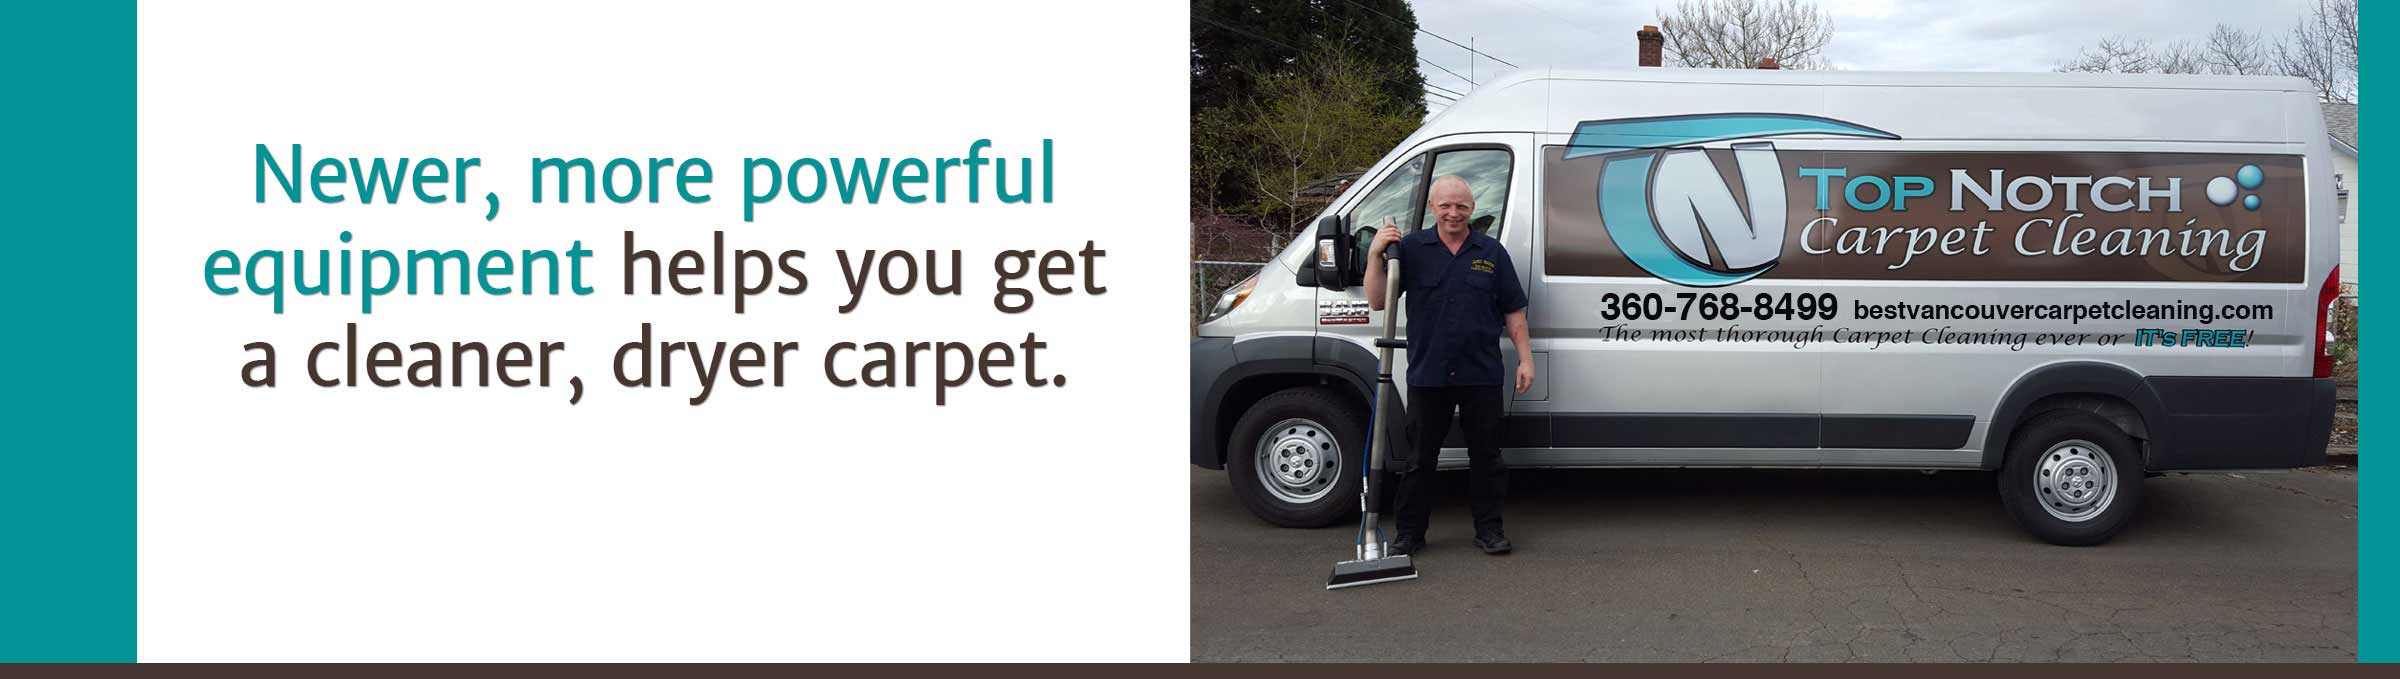 Top Notch Carpet Cleaning | Commercial & Residential Carpet Cleaning Services in Vancouver WA & Portland OR